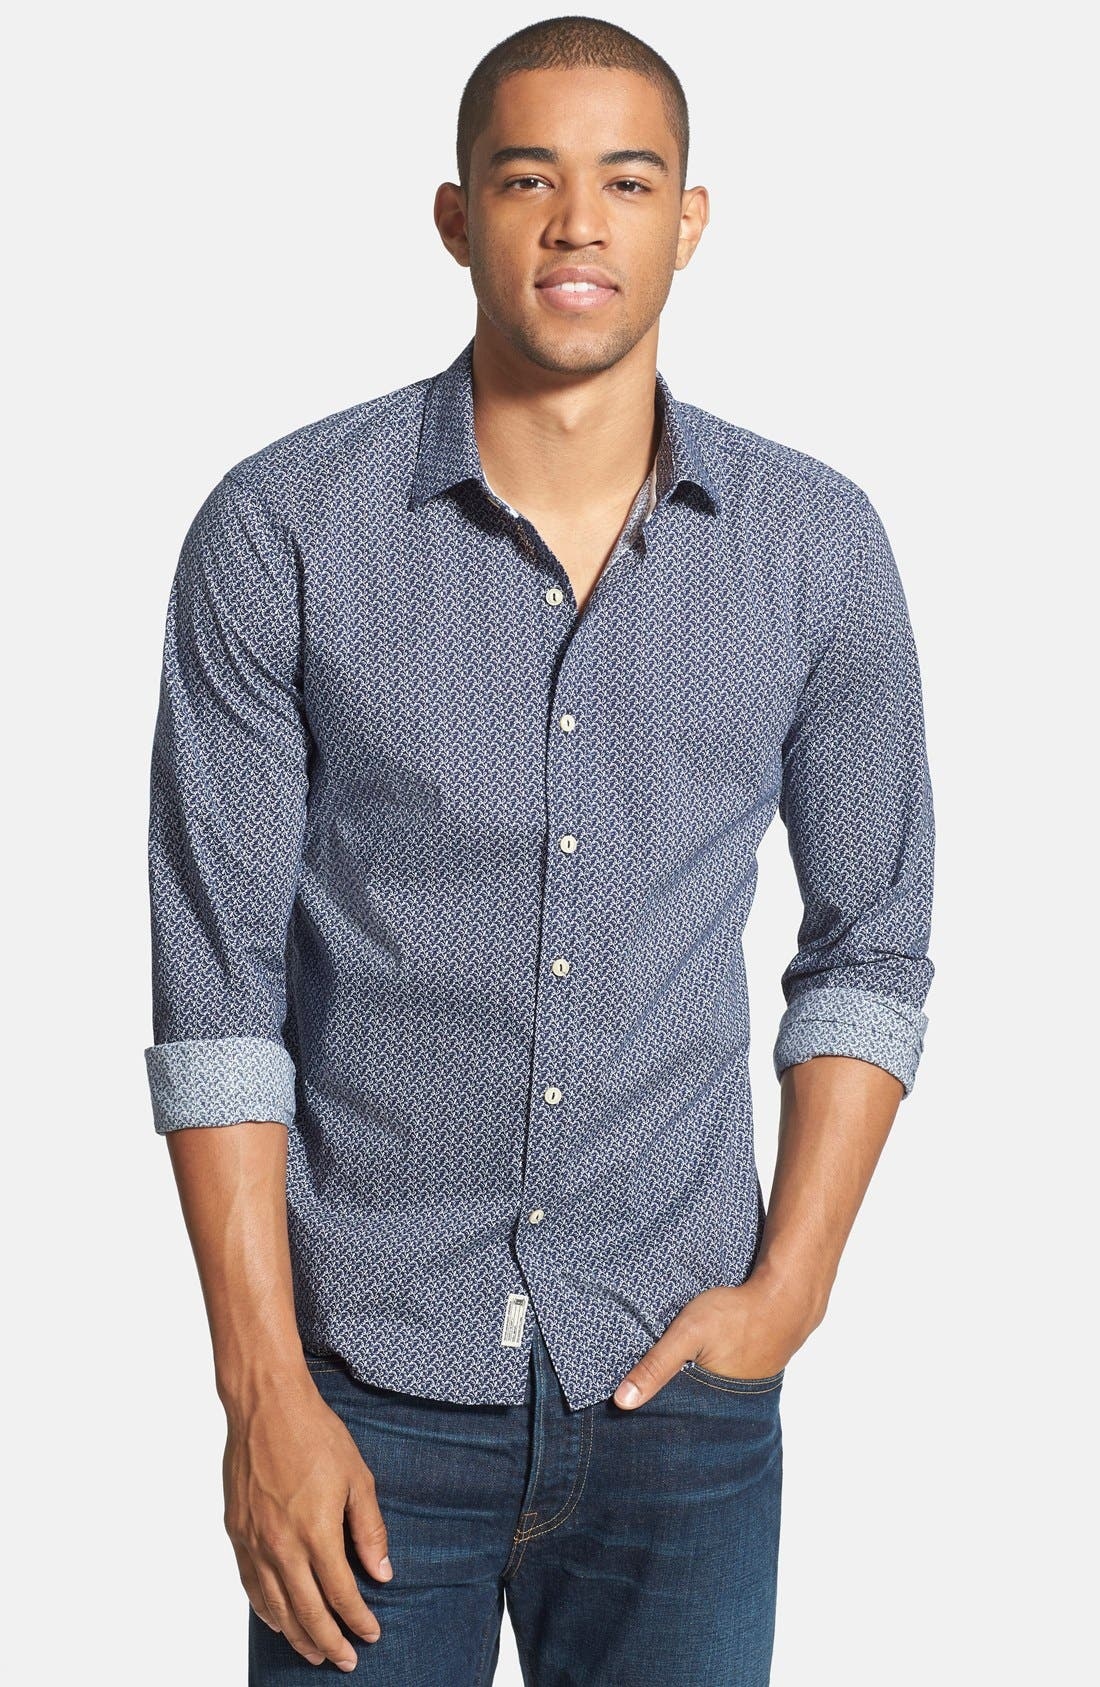 'Blueberry Hill' Trim Fit Print Woven Shirt,                             Main thumbnail 1, color,                             410